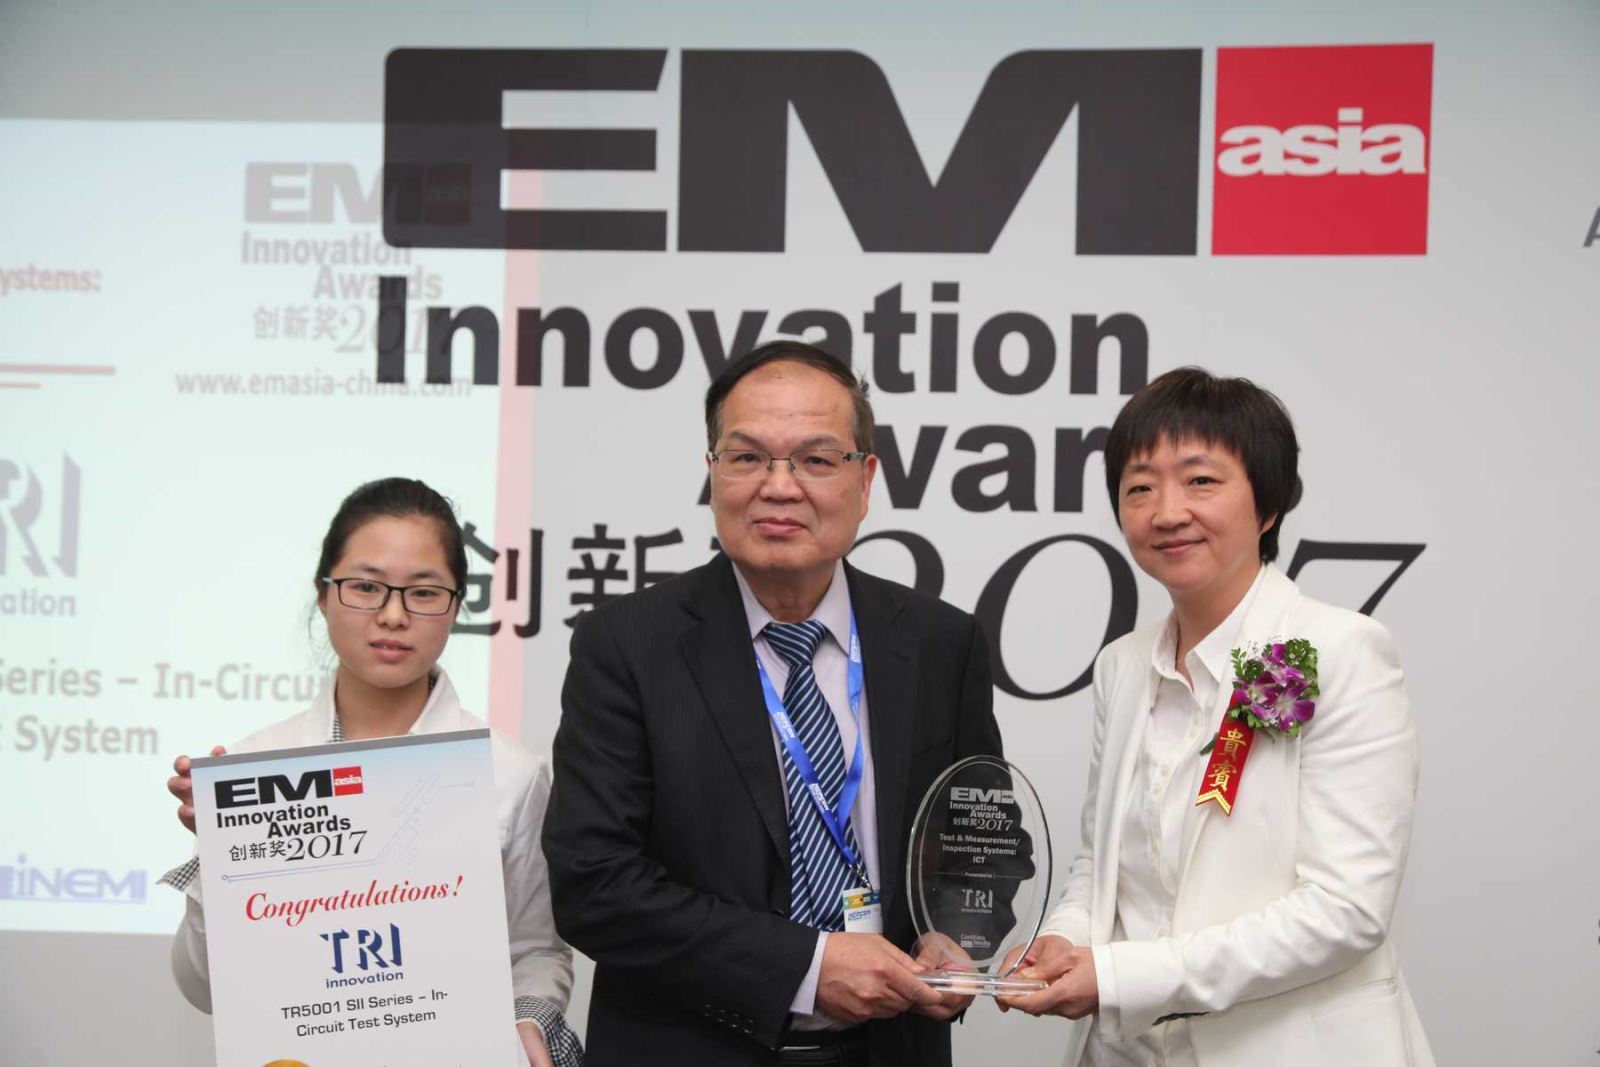 TRI EM Asia Innovation Awards Ceremony Photo